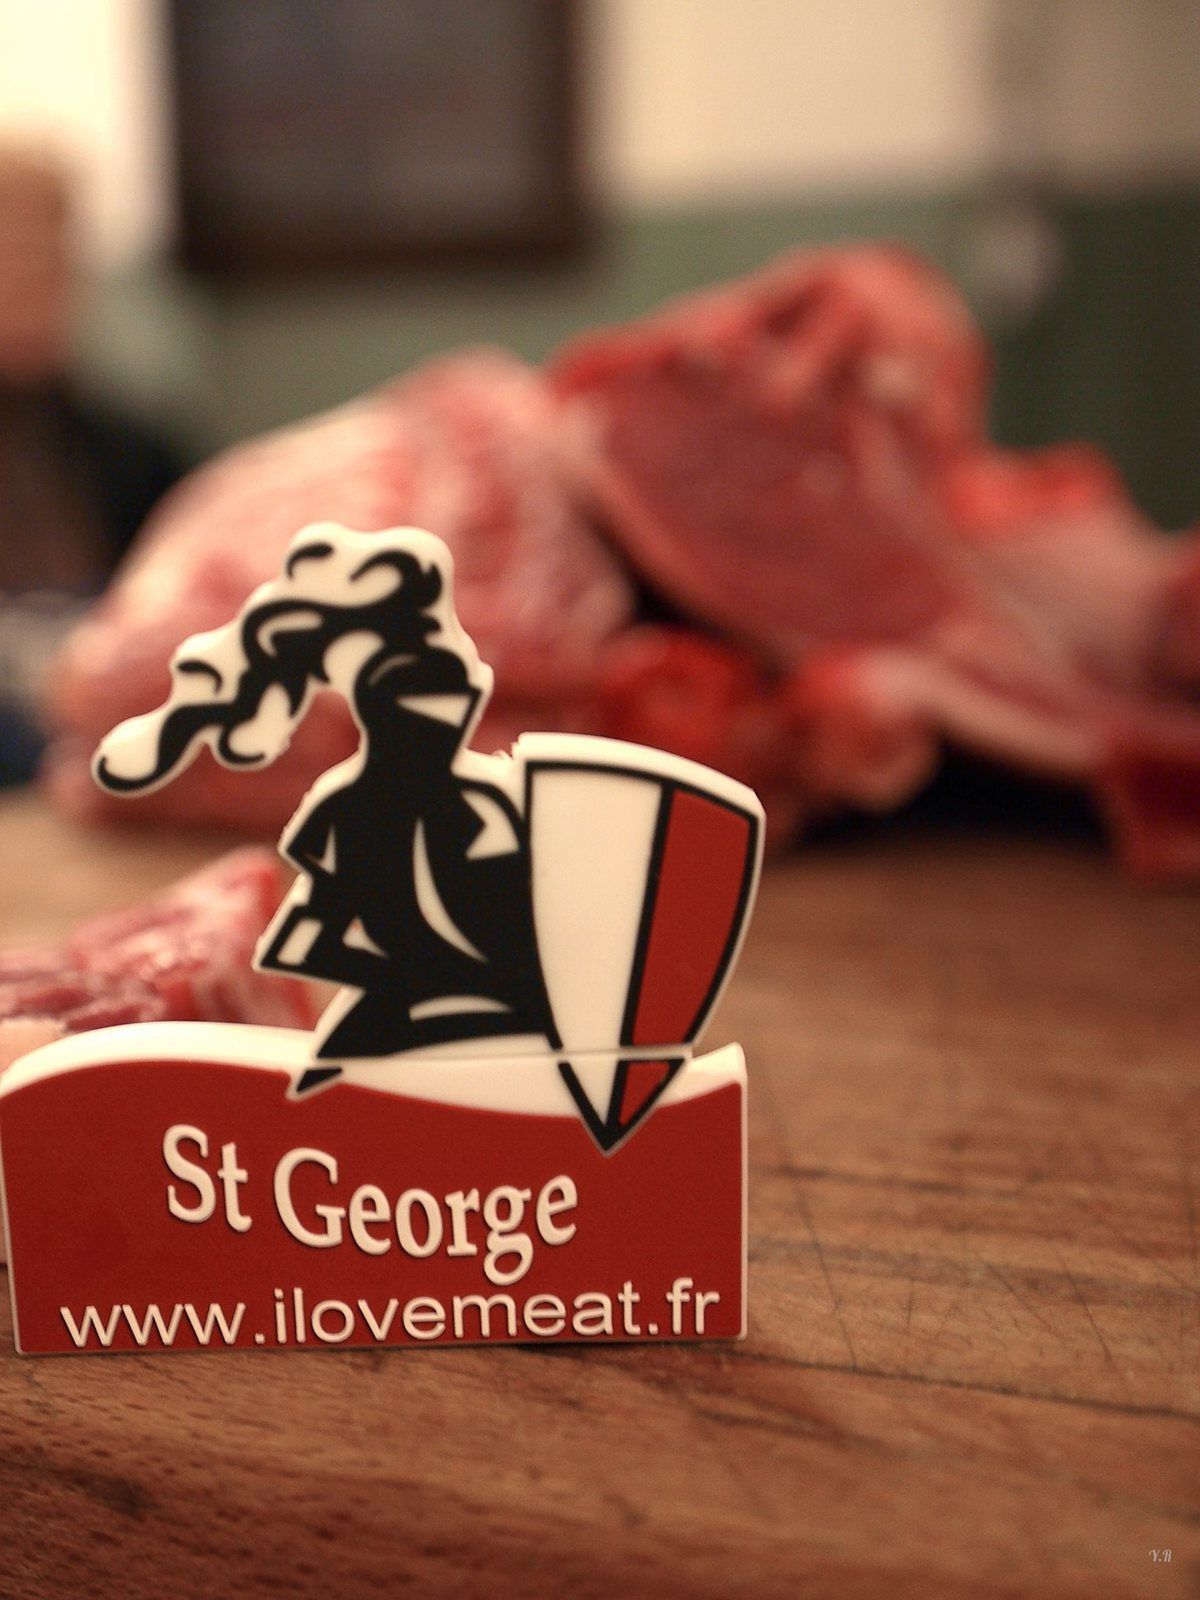 L'agneau St George passe à table !